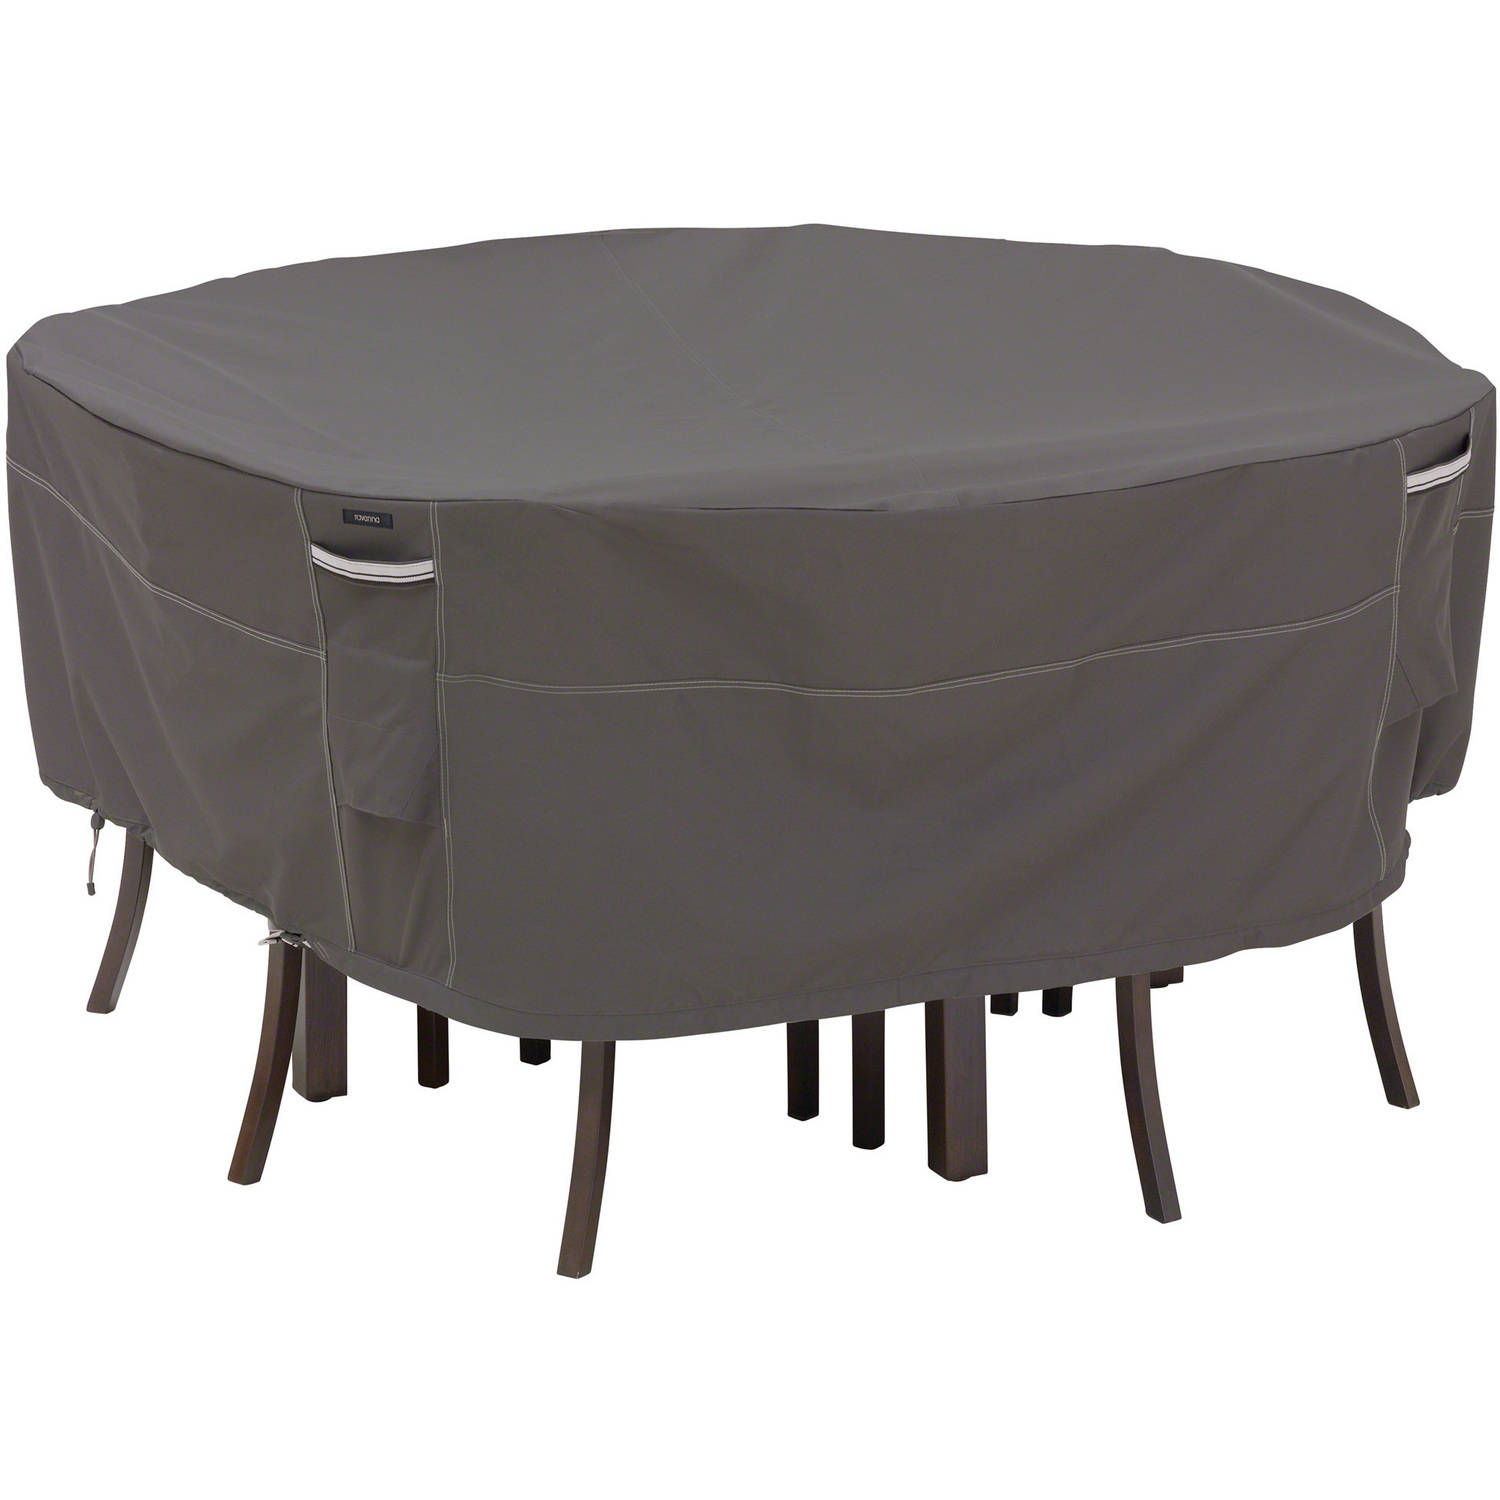 Classic Accessories Ravenna Round Patio Table and Chair Cover Premium Outdoor Furniture... by Outdoor Furniture Covers